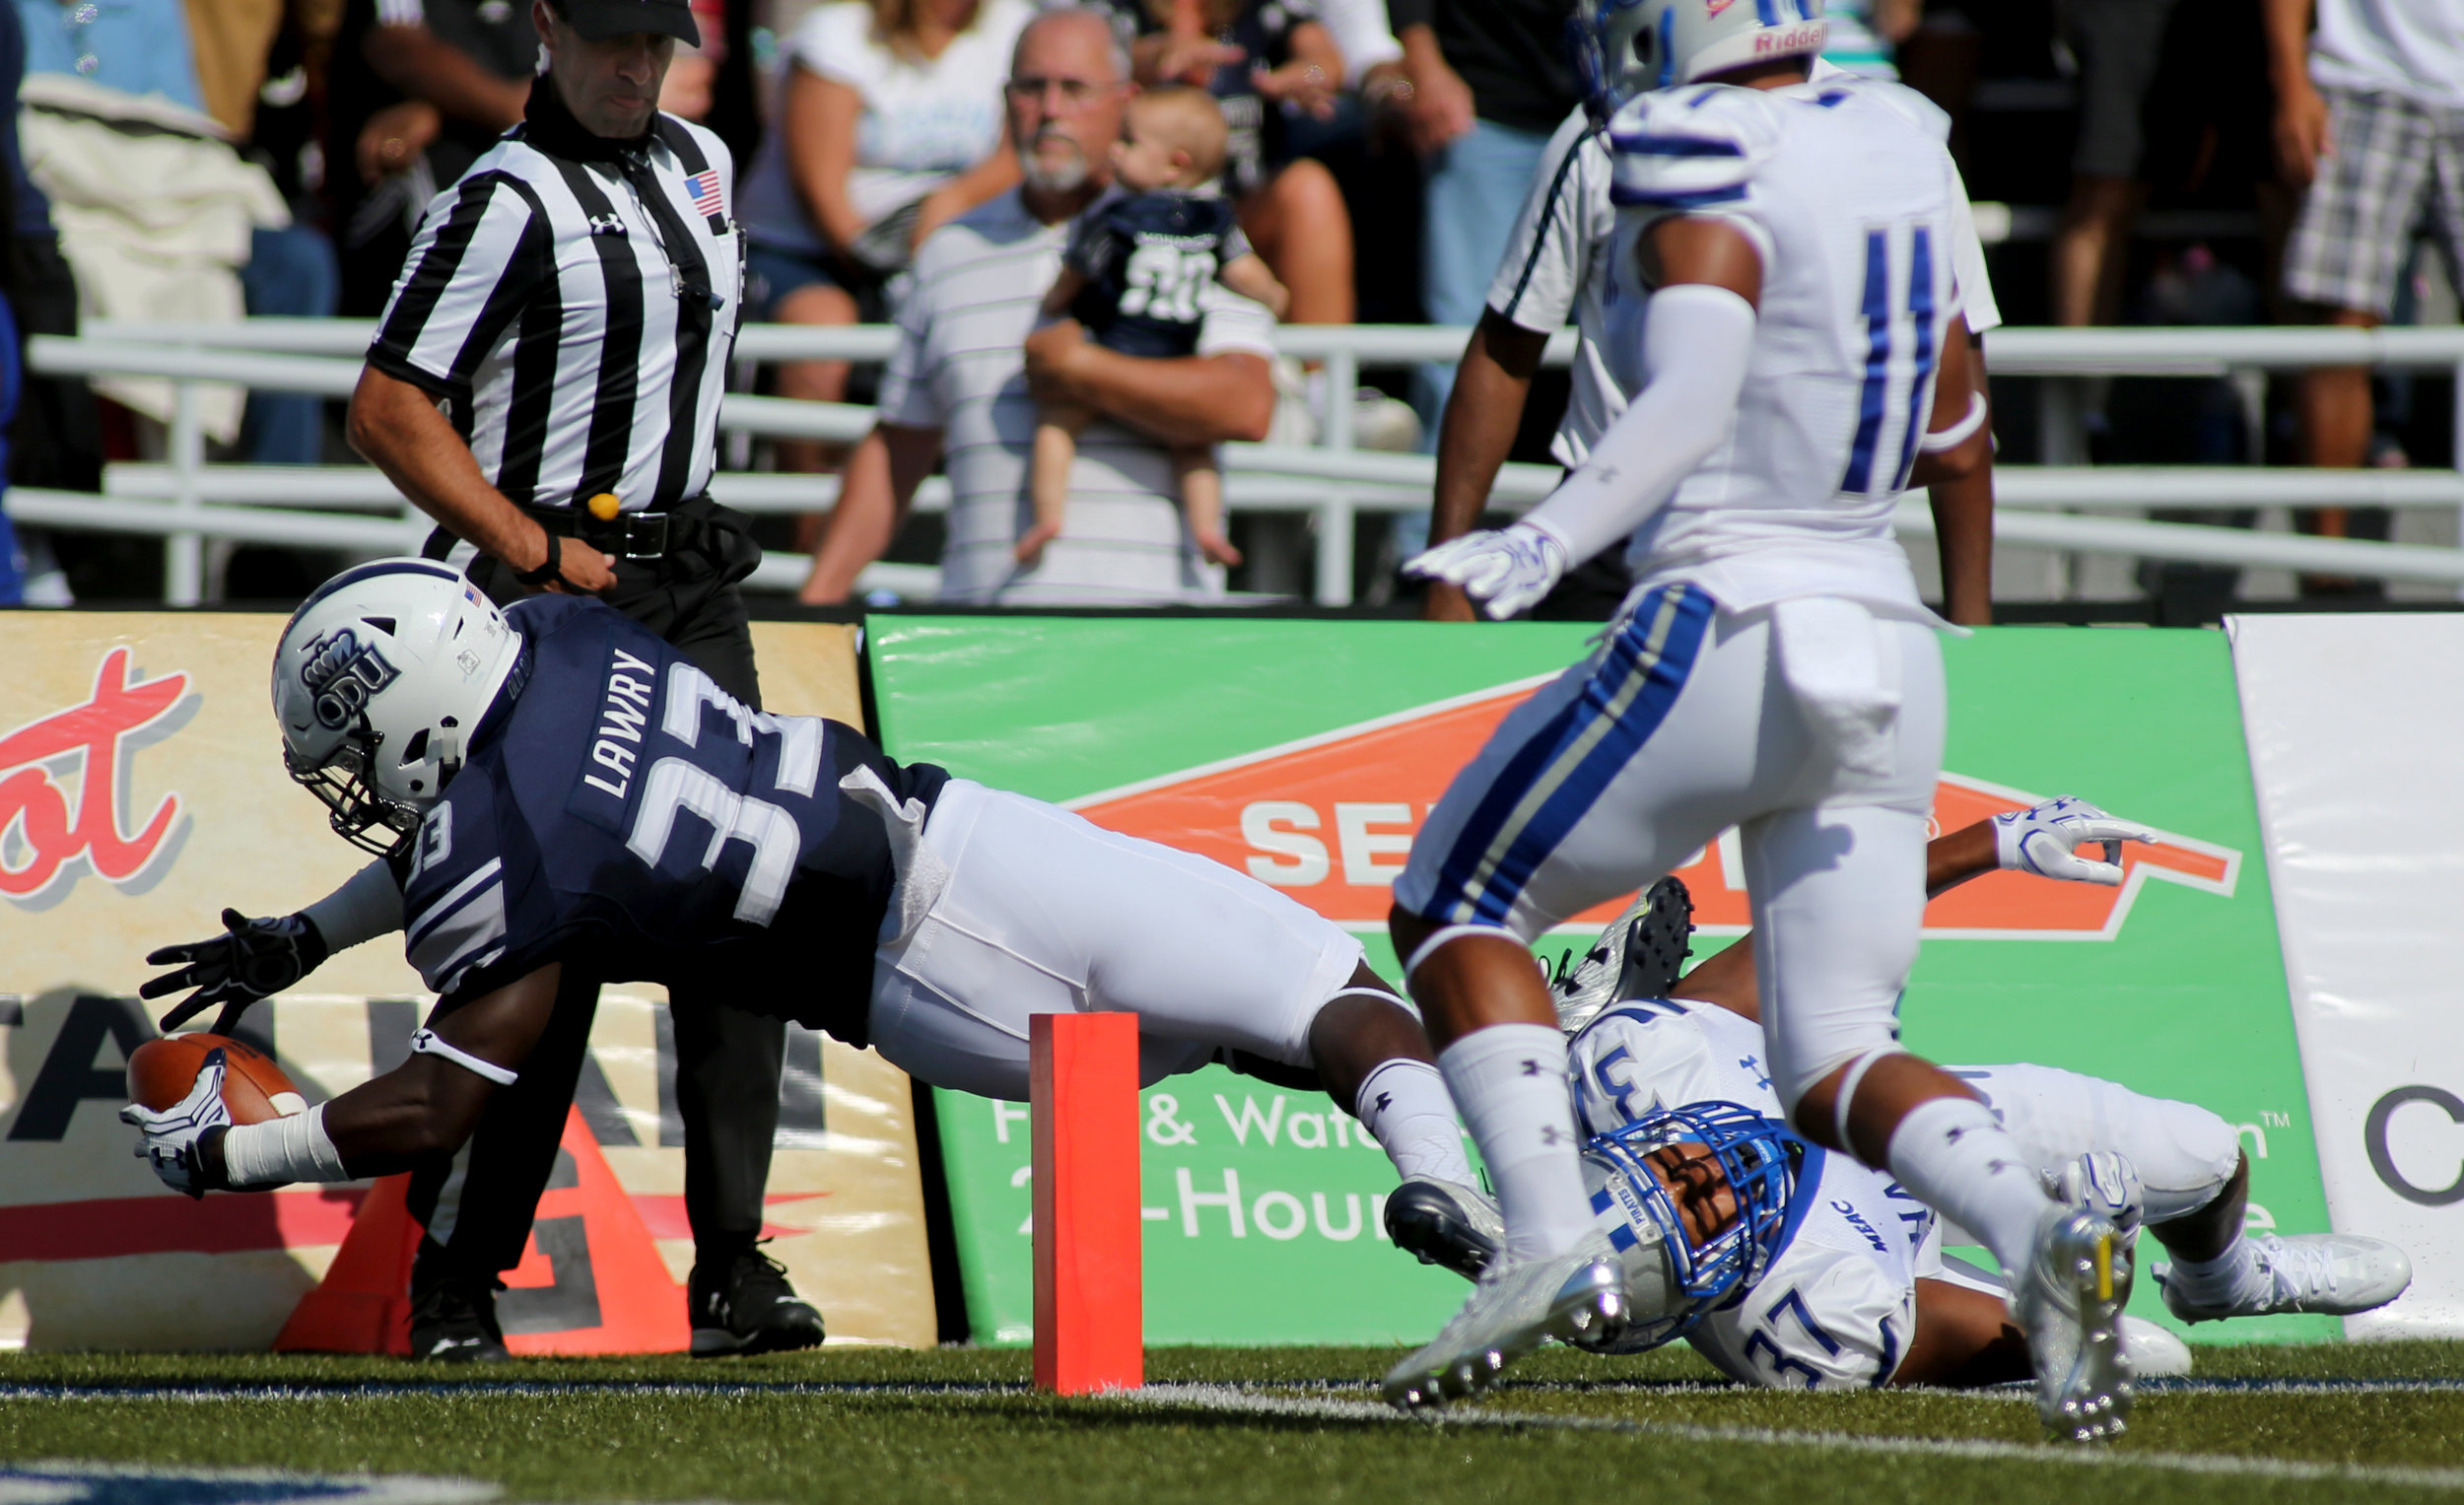 Old Dominion's Ray Lawry dives across the pylon for a first half touchdown over Hampton, Sunday, Sept. 4, 2016 at Foreman Field in Norfolk.   (Jason Hirschfeld | The Virginian-Pilot)